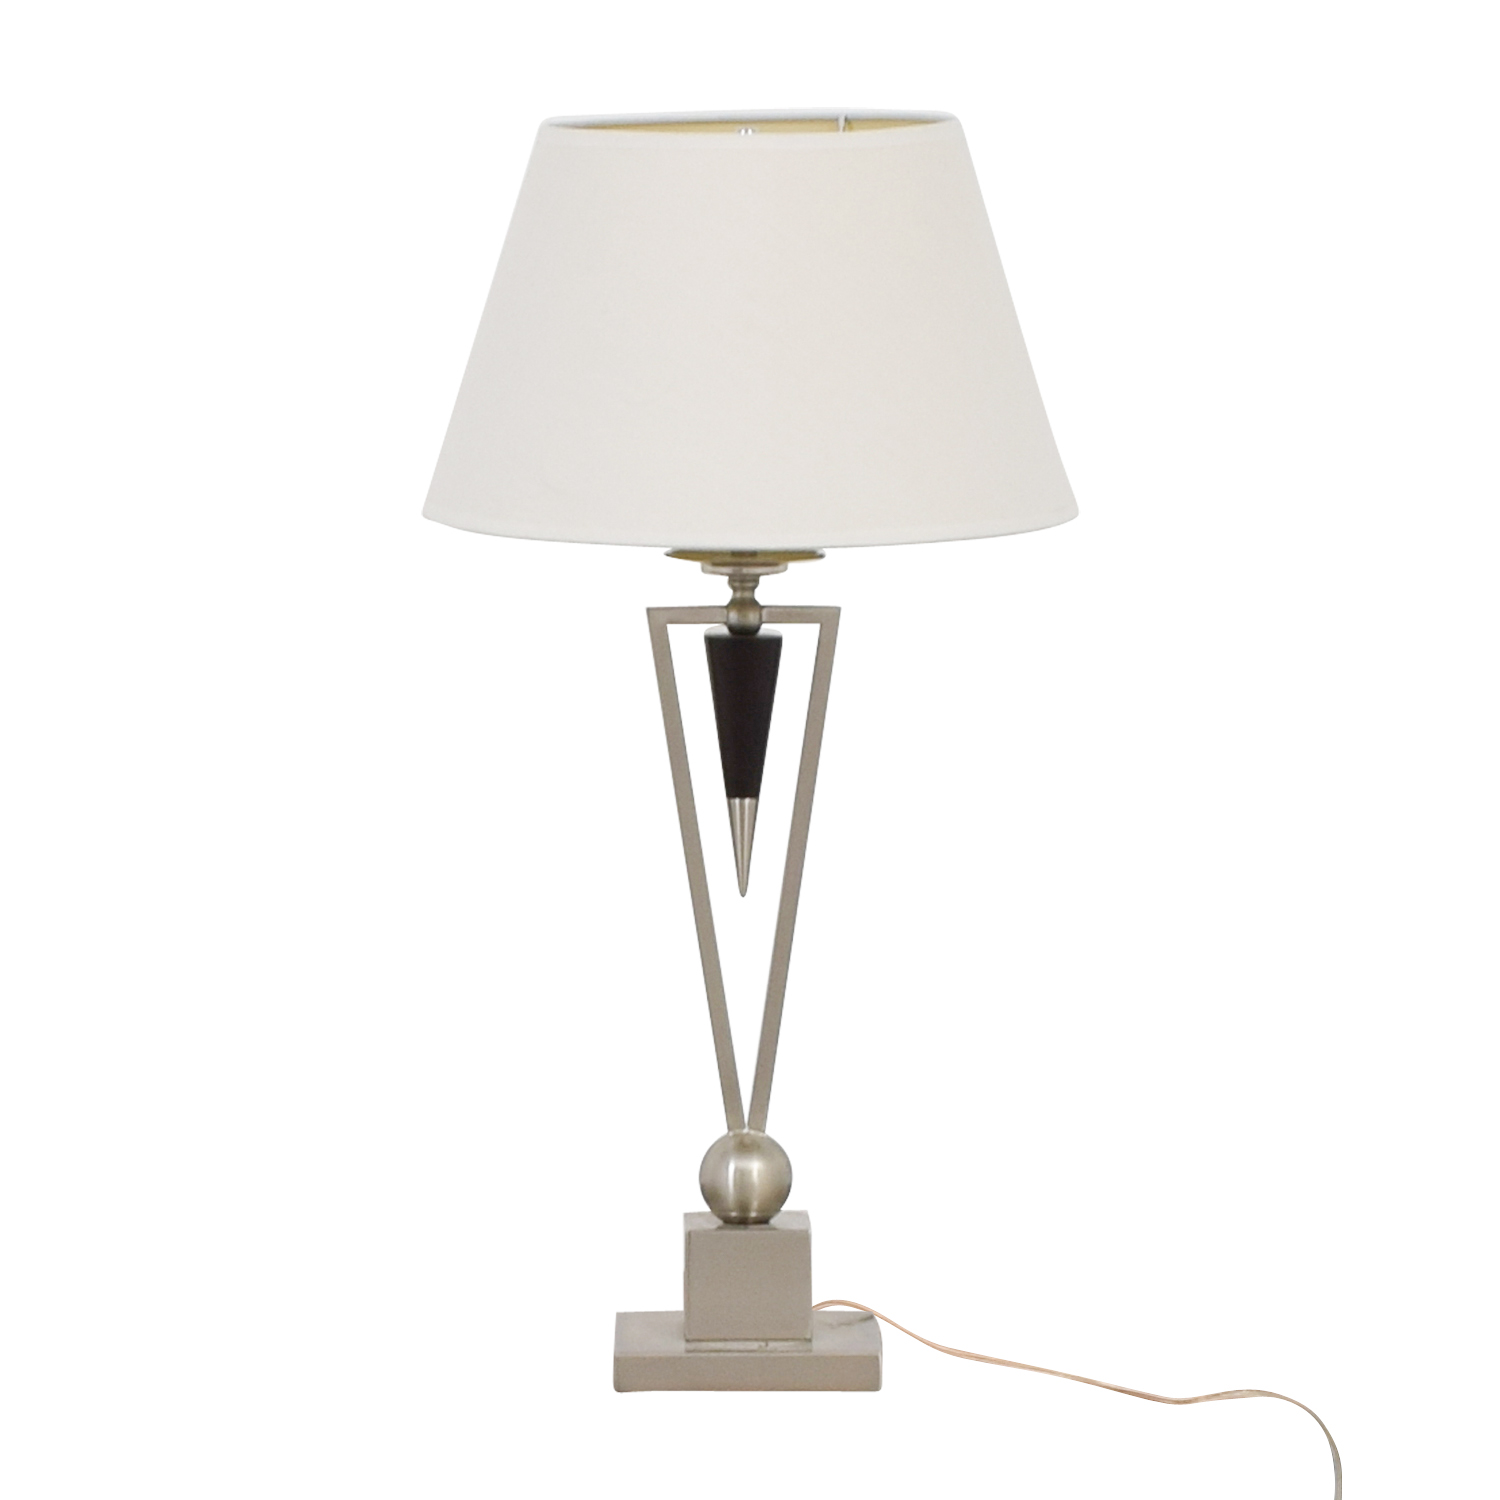 buy Raymour & Flanigan Triangular Table Lamp Raymour & Flanigan Lamps